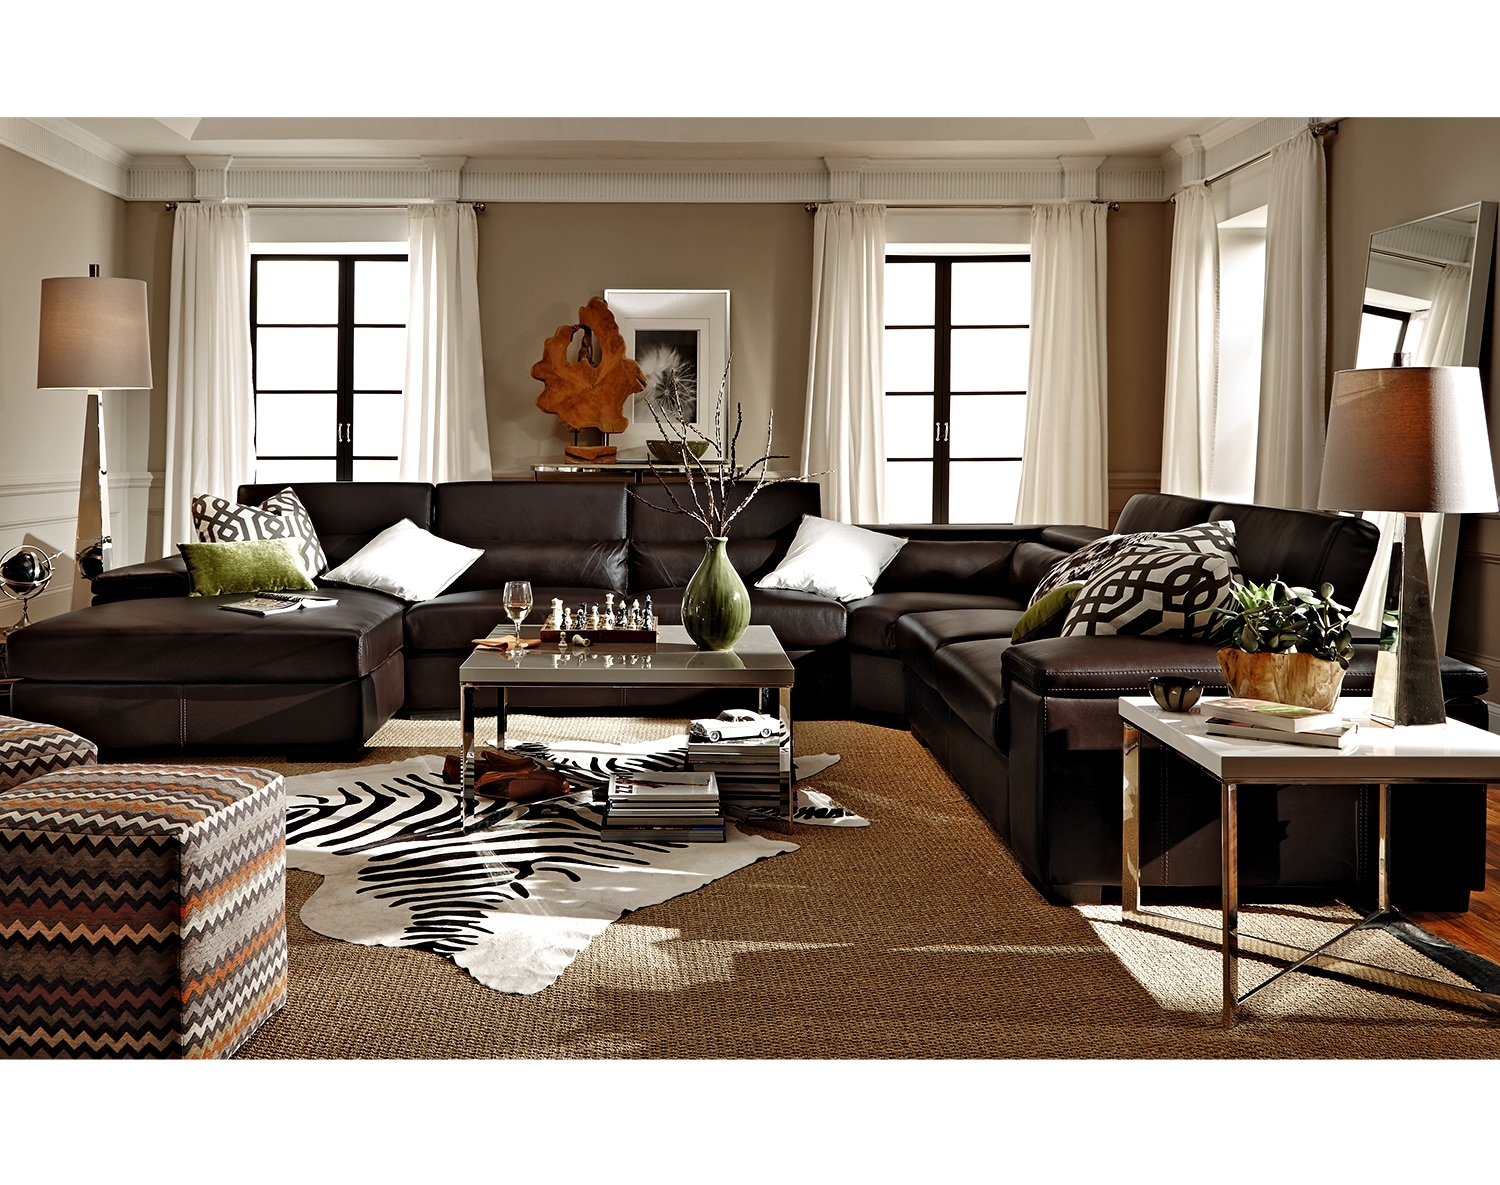 Living Room Furniture - The Carmel Godiva Collection - 4 Pc. Sectional